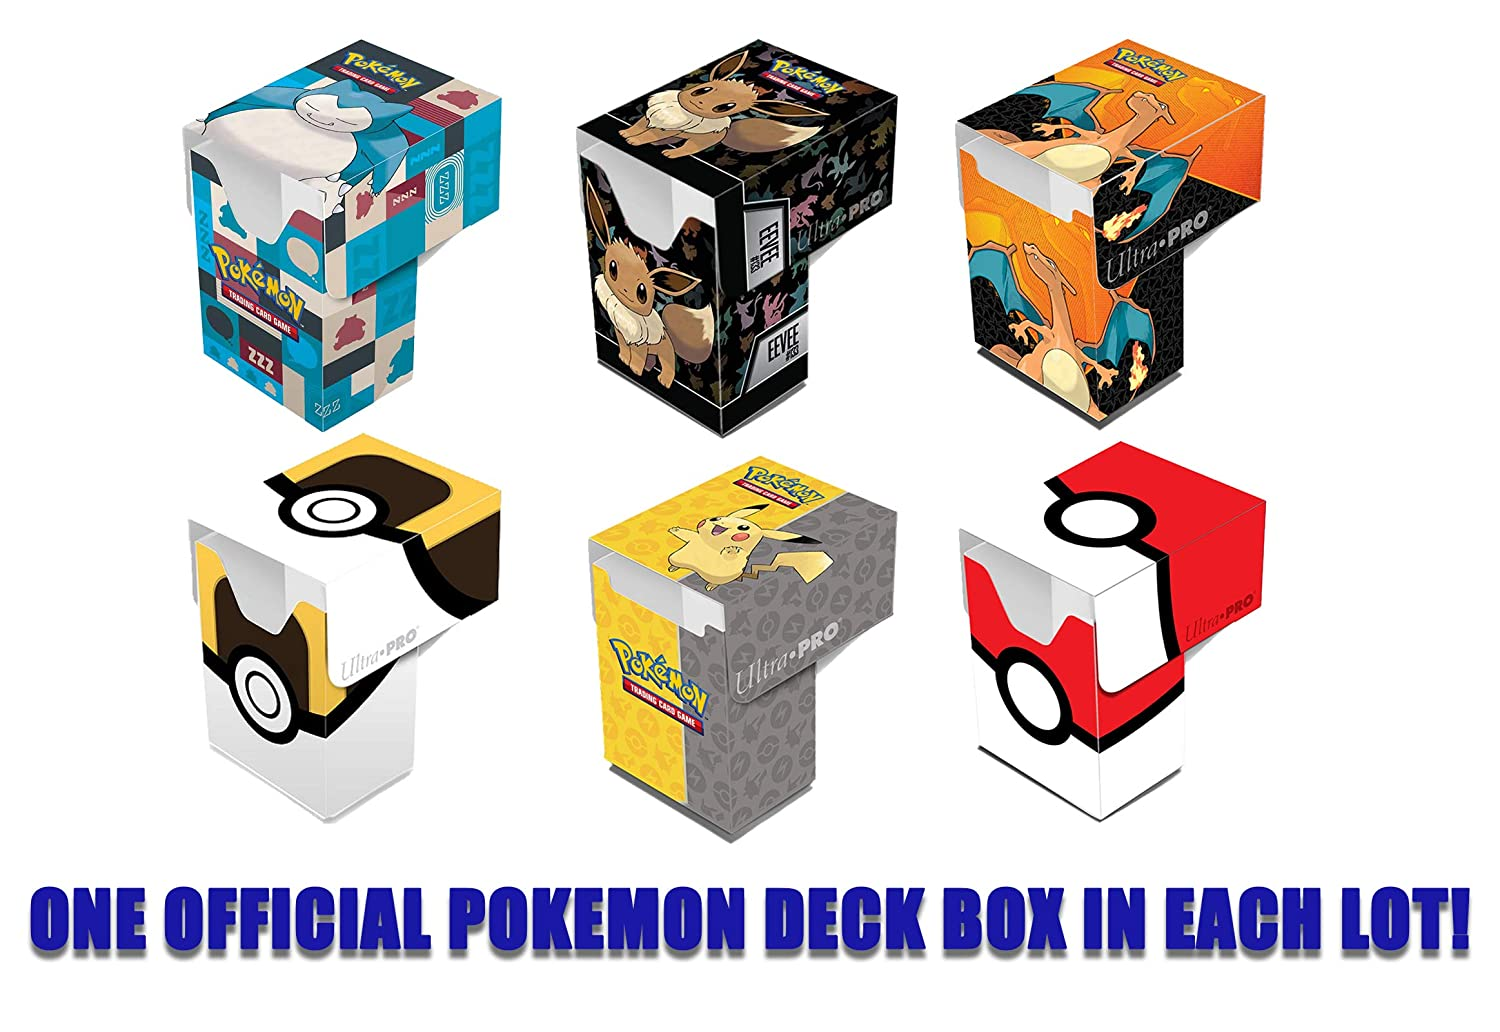 Golden Groundhog Storage Box! 5 Holo//Reverse Holo Cards 5 Rare Cards Pokemon EX Card Lot with Booster Pack 20 Common//Uncommon Cards Pokemon Deck Box